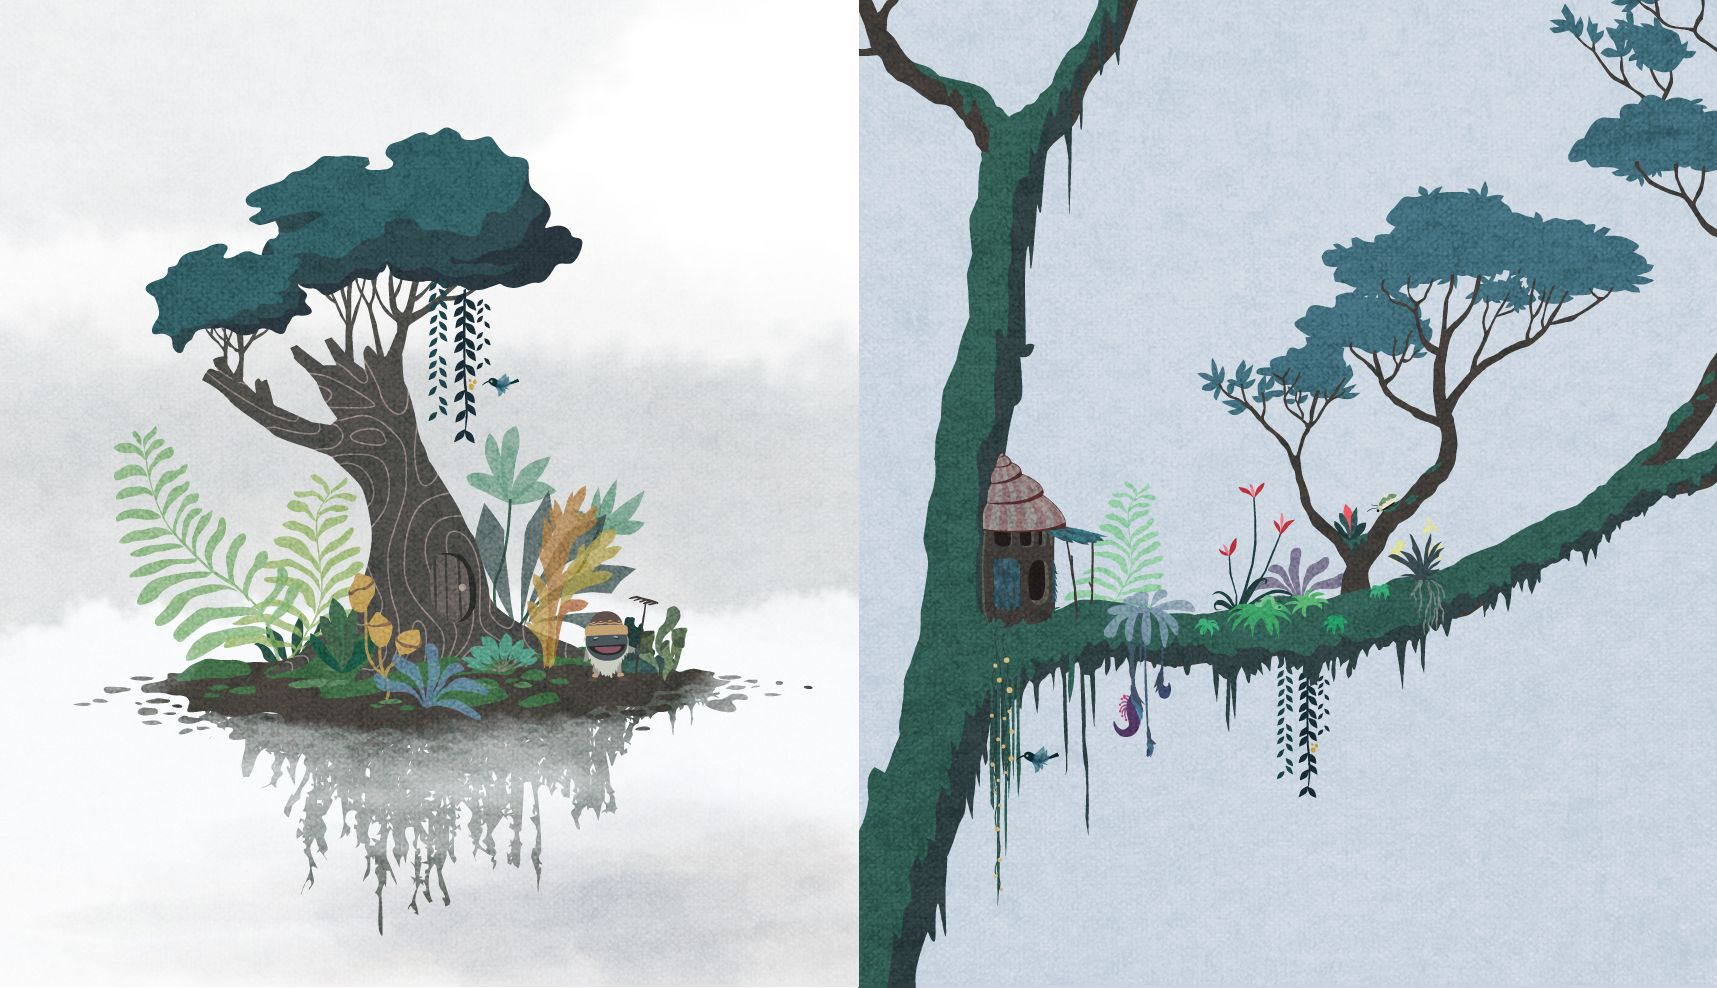 Two early garden concepts: Left - a garden on a floating island in the mist; Right - a garden on a branch